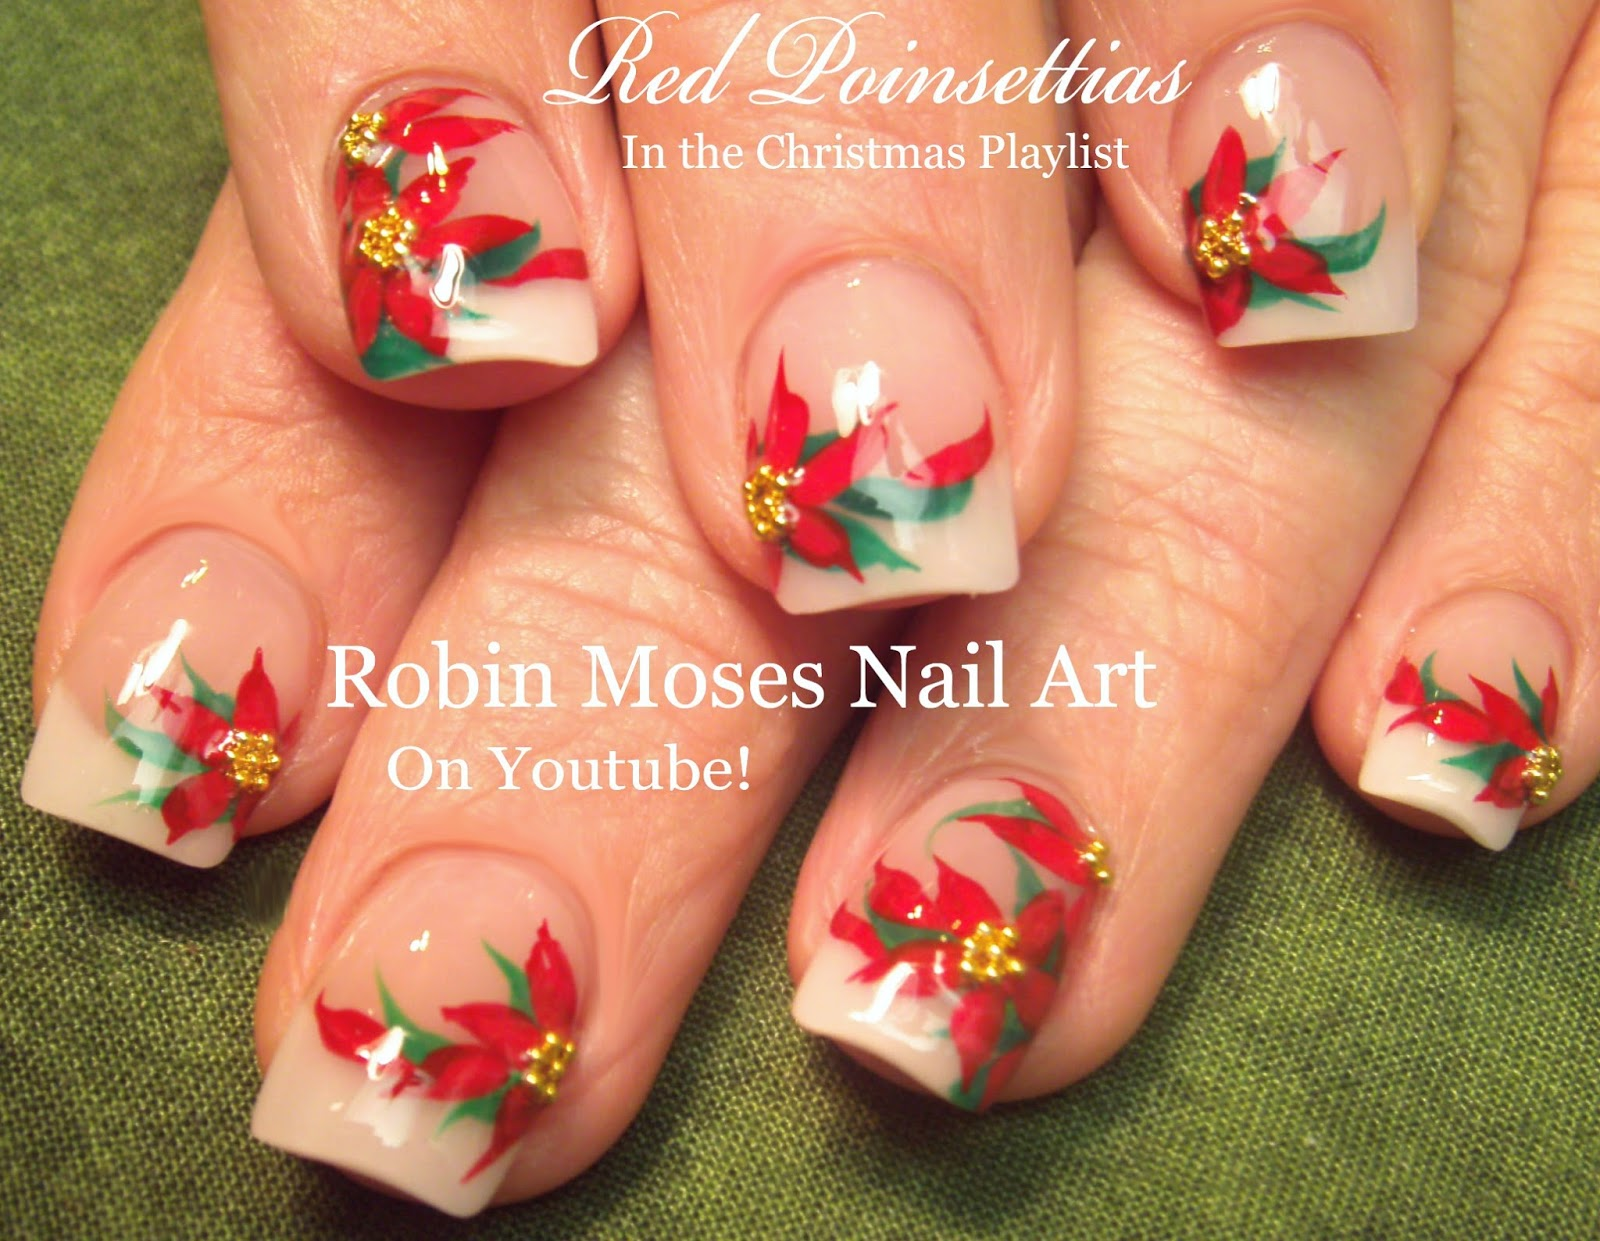 Nail Art By Robin Moses Christmas Poinsetta Nail Art Xmas Flower